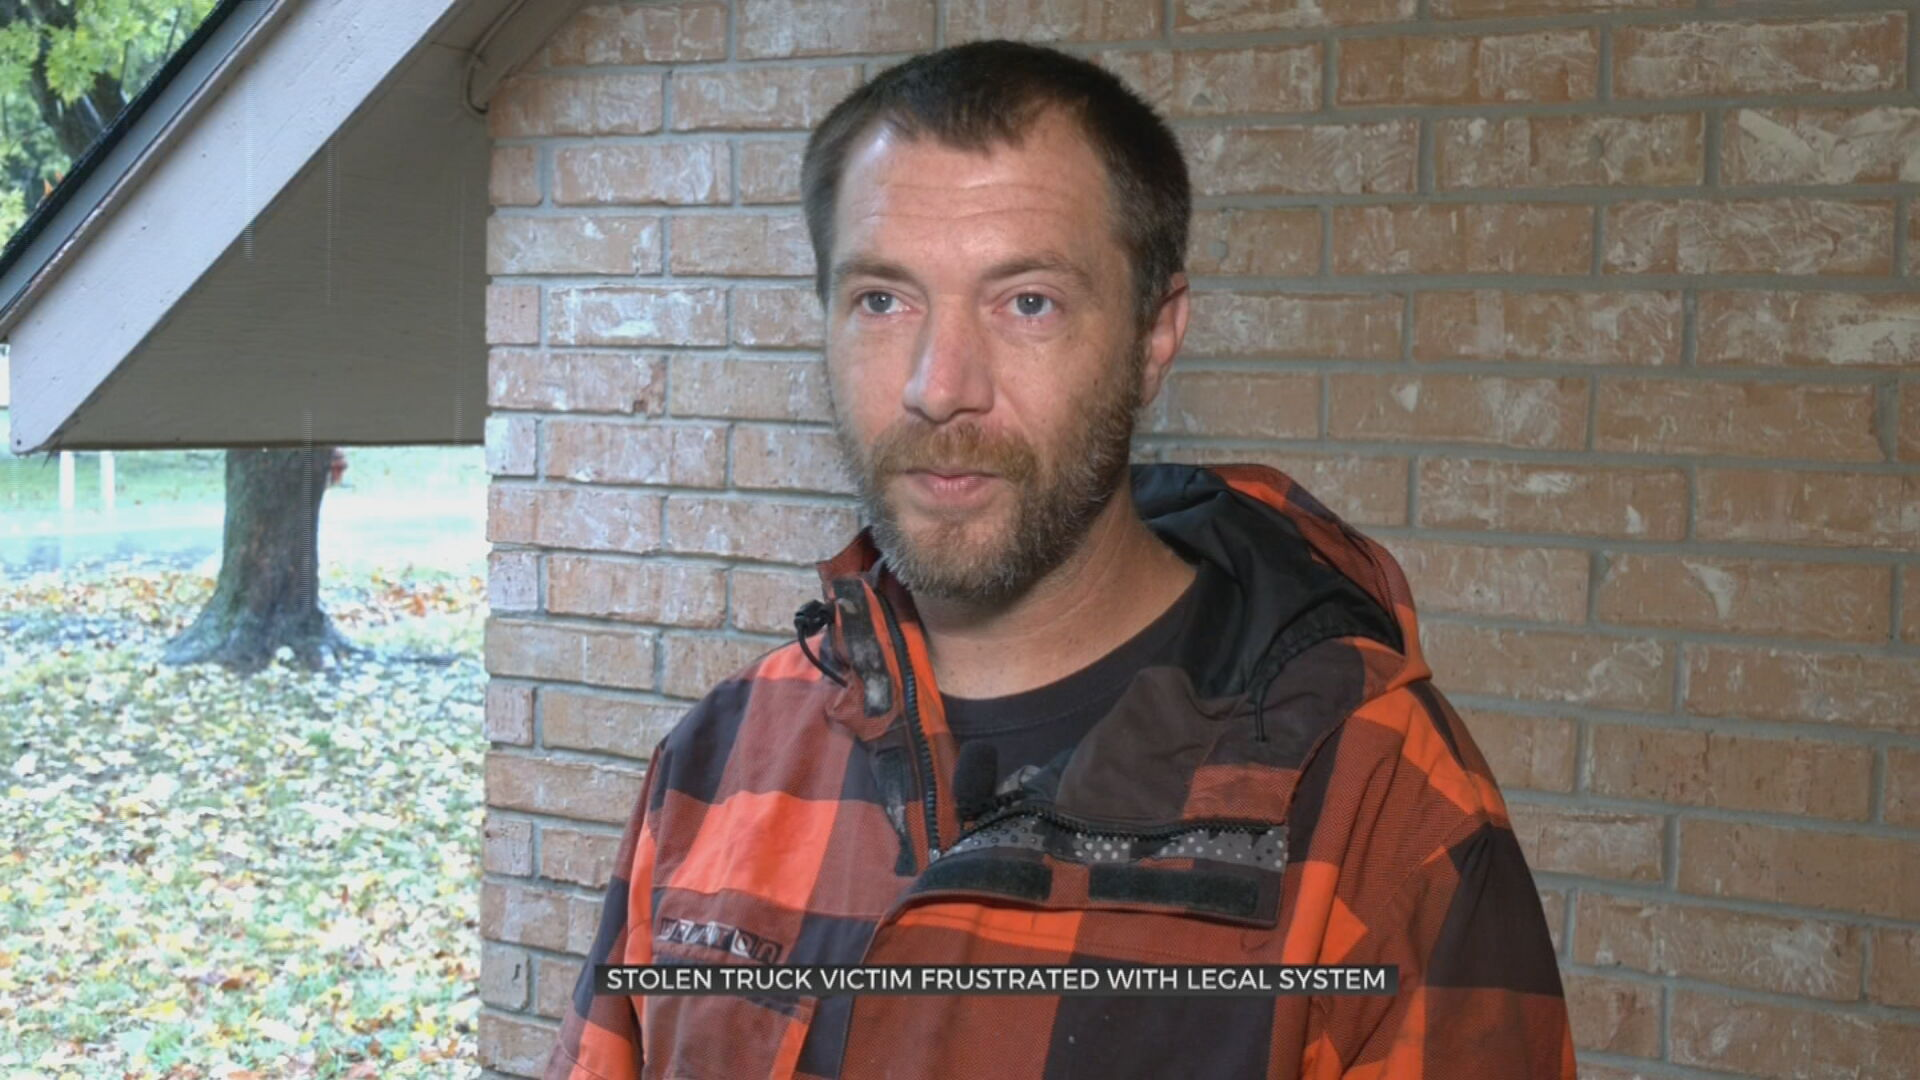 Victim Of Suspected Repeat Car Thief Frustrated With Legal System